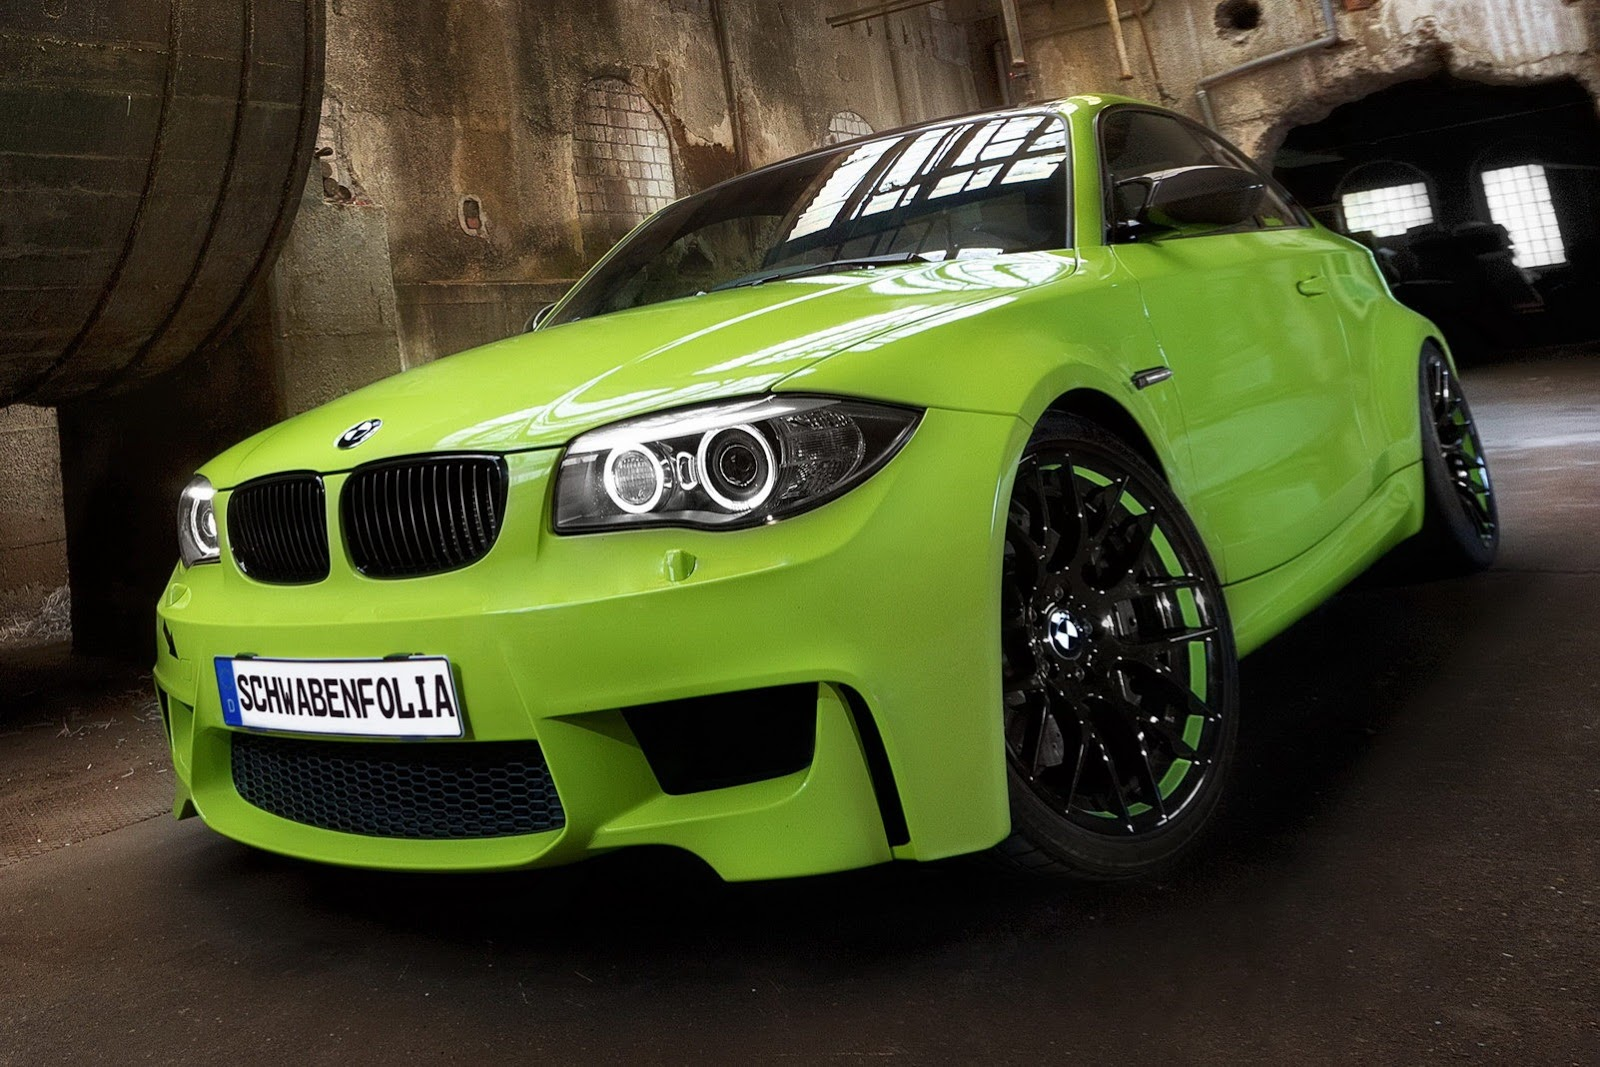 Schwabenfolia Wraps The Bmw 1 Series M Coupe In Lime Green Bmwcoop